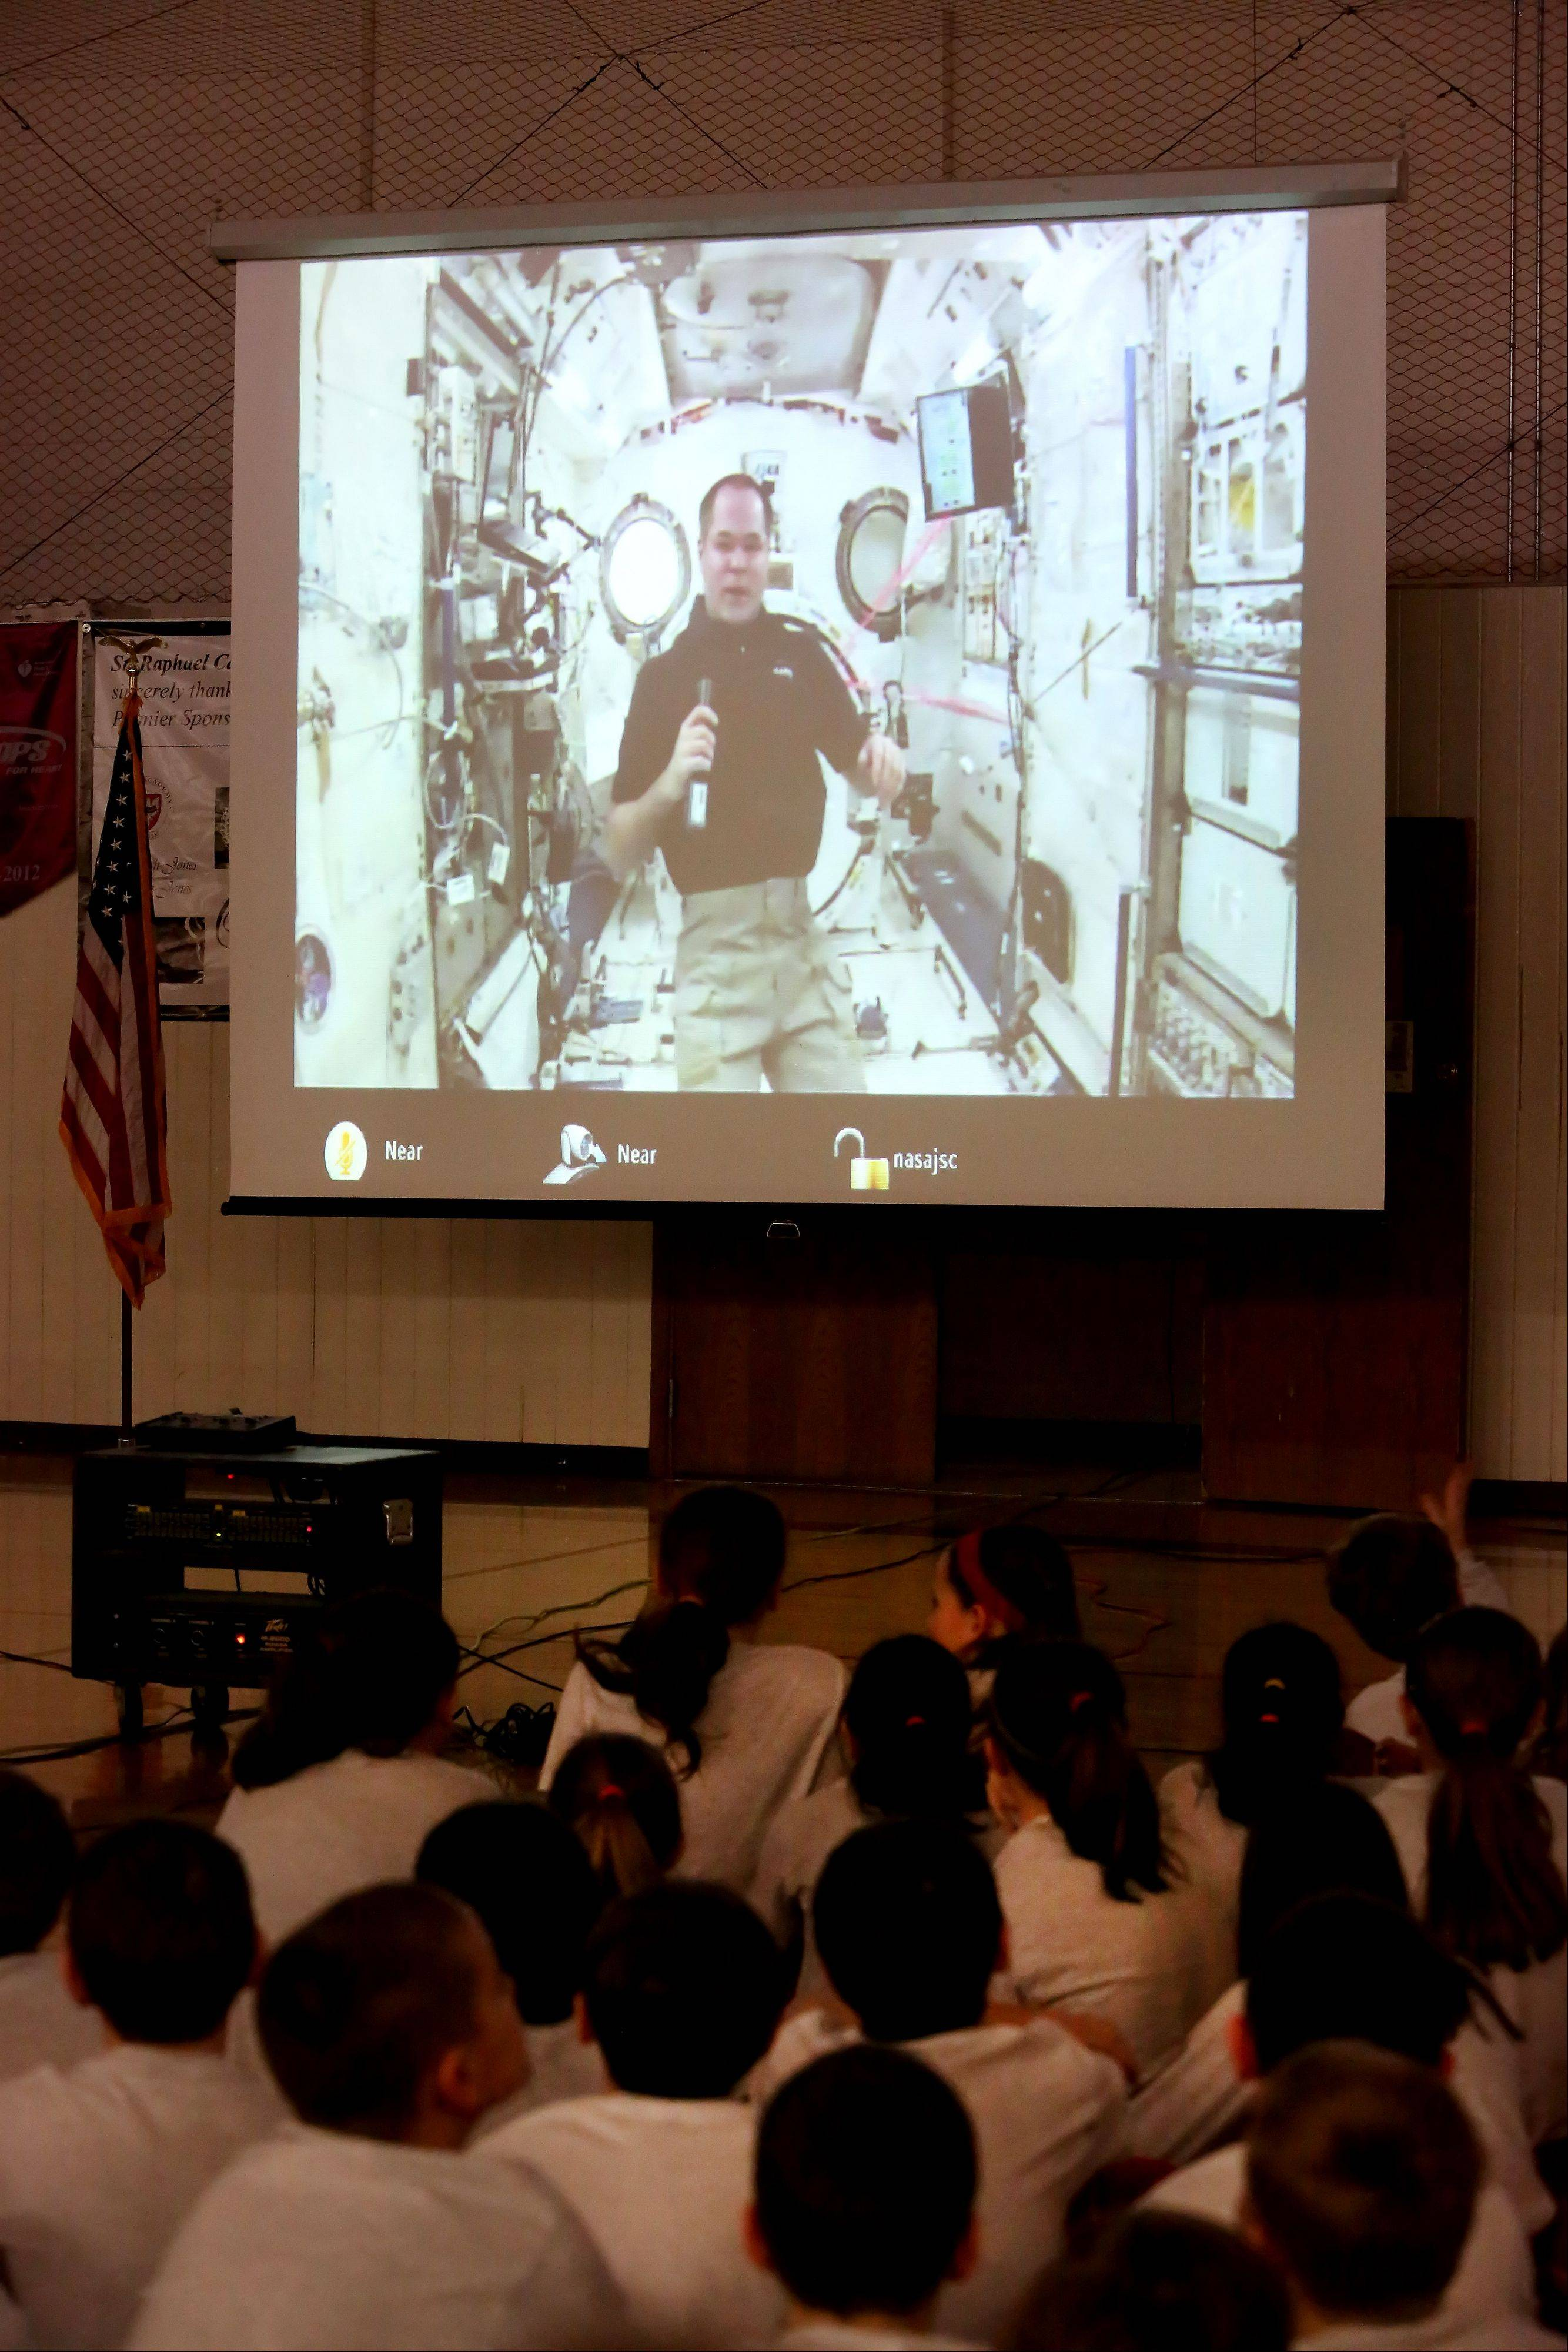 Students from St. Raphael School in Naperville on Tuesday talked to Cmdr. Kevin Ford aboard the International Space Station. Ford, however, was unable to see the students.